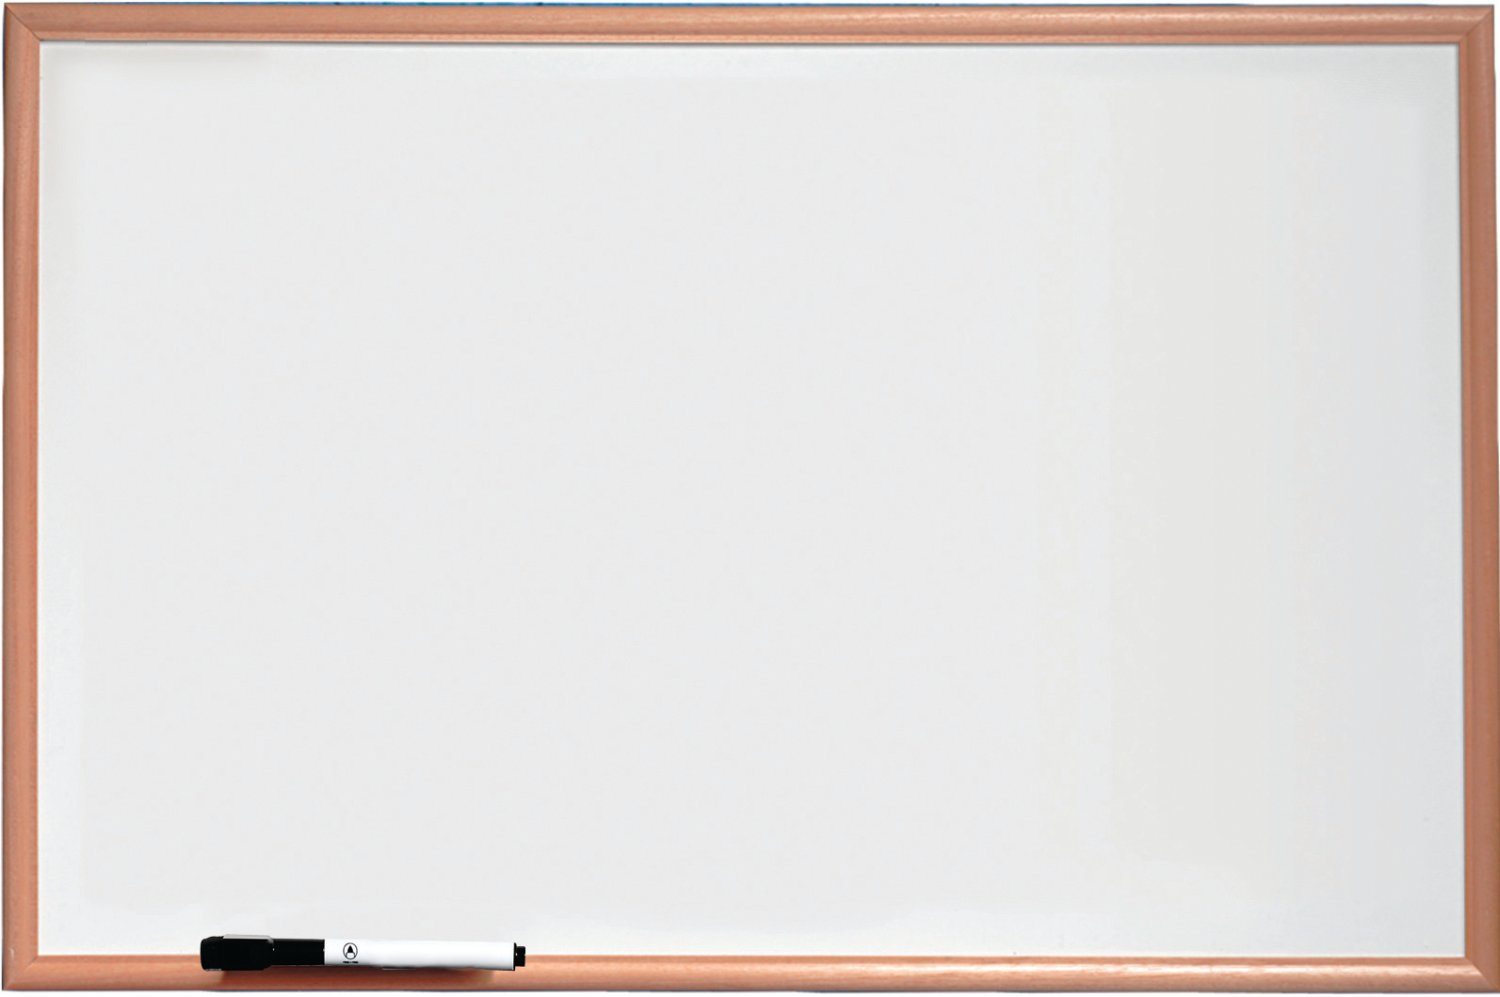 NOBO 1905199 BASIC MELAMINE NON MAGNETIC WHITEBOARD 600X400MM WITH PINE TRIM